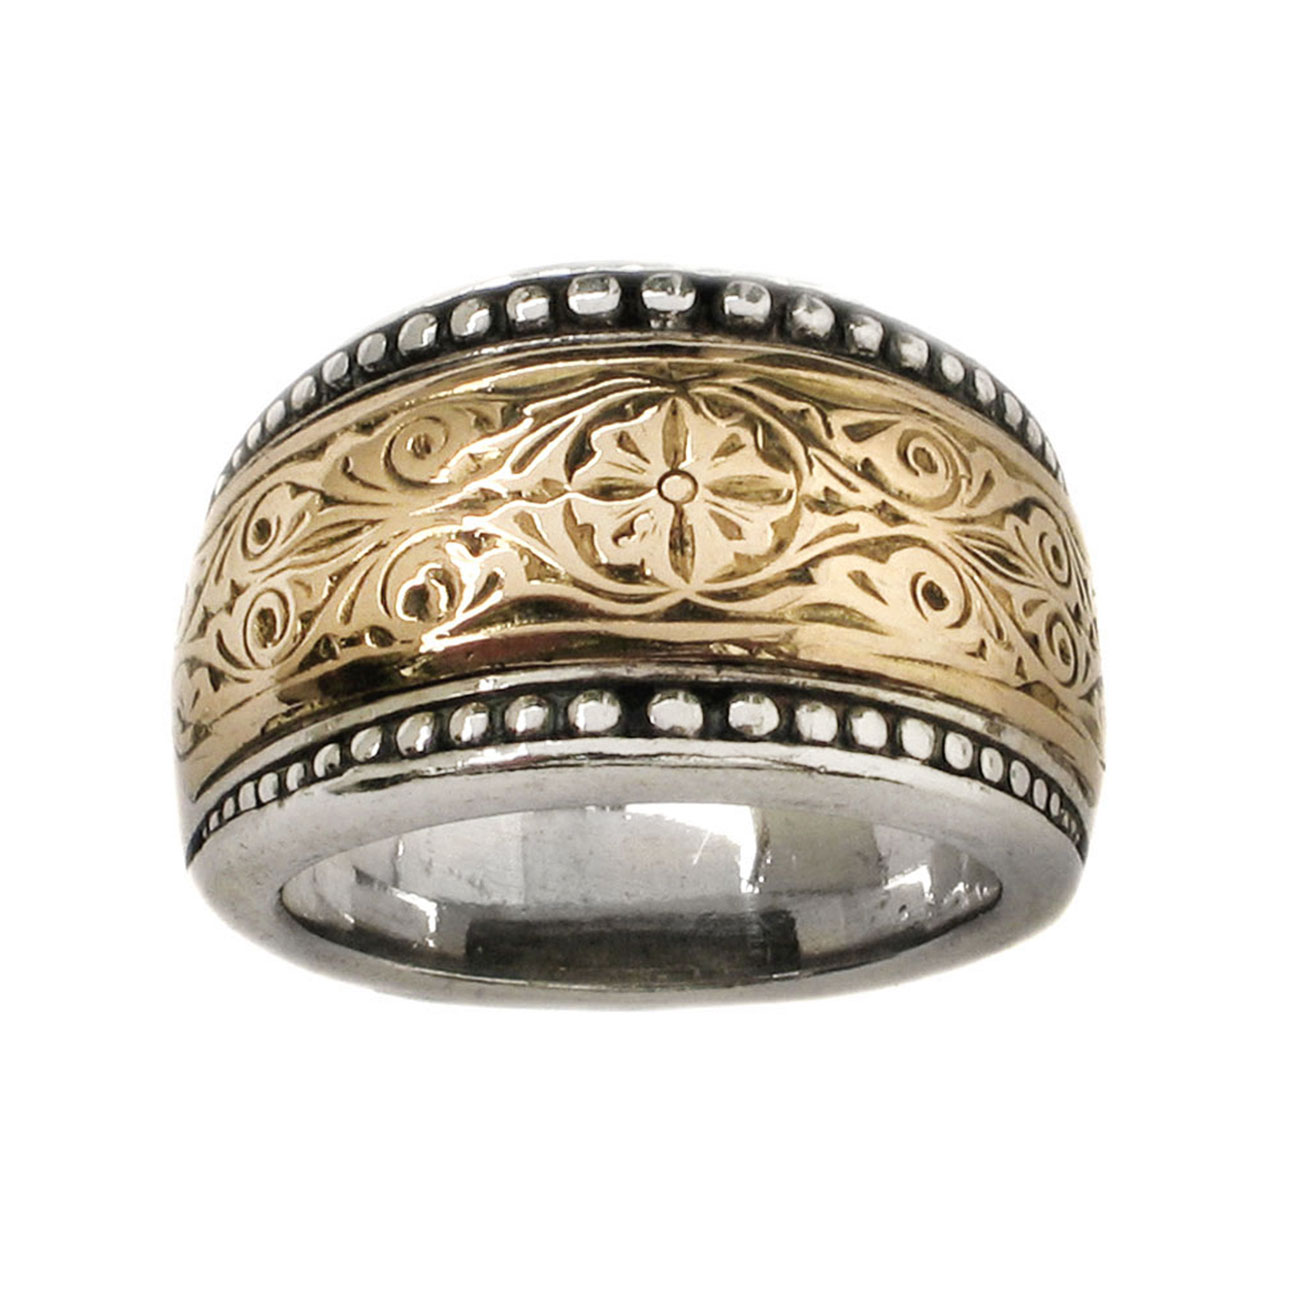 Wedding Traditions and Meanings: Byzantine Wedding Ring